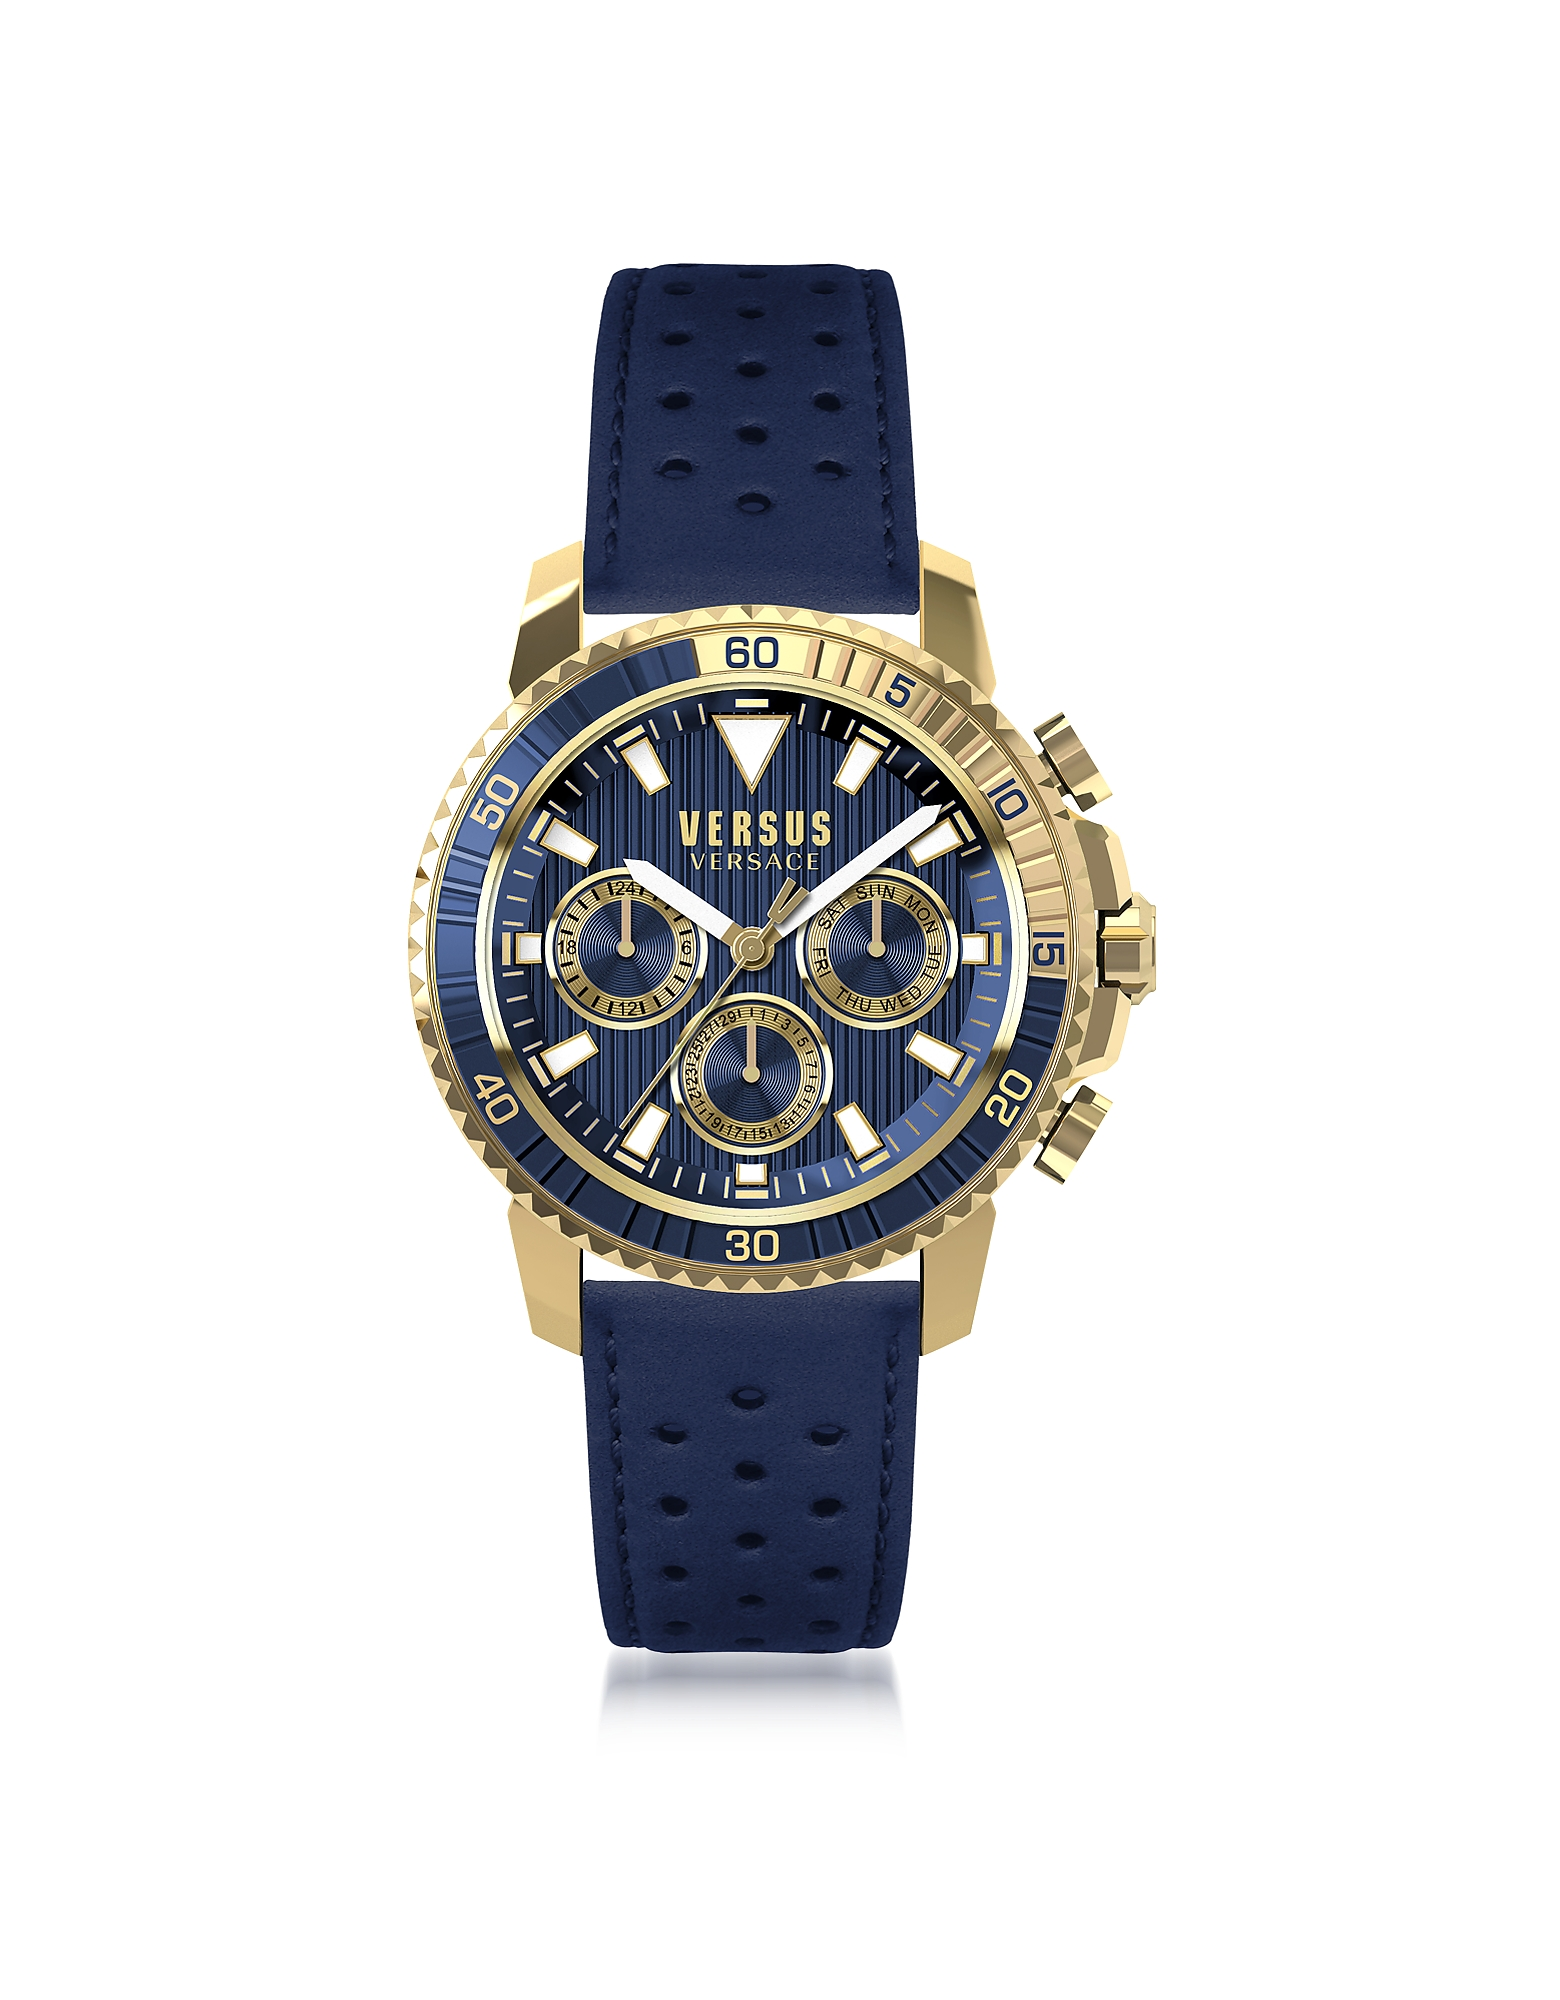 Versace Versus Men's Watches, Aberdeen Gold Tone Stainless Steel Men's Chronograph Watch w/Blue Leat